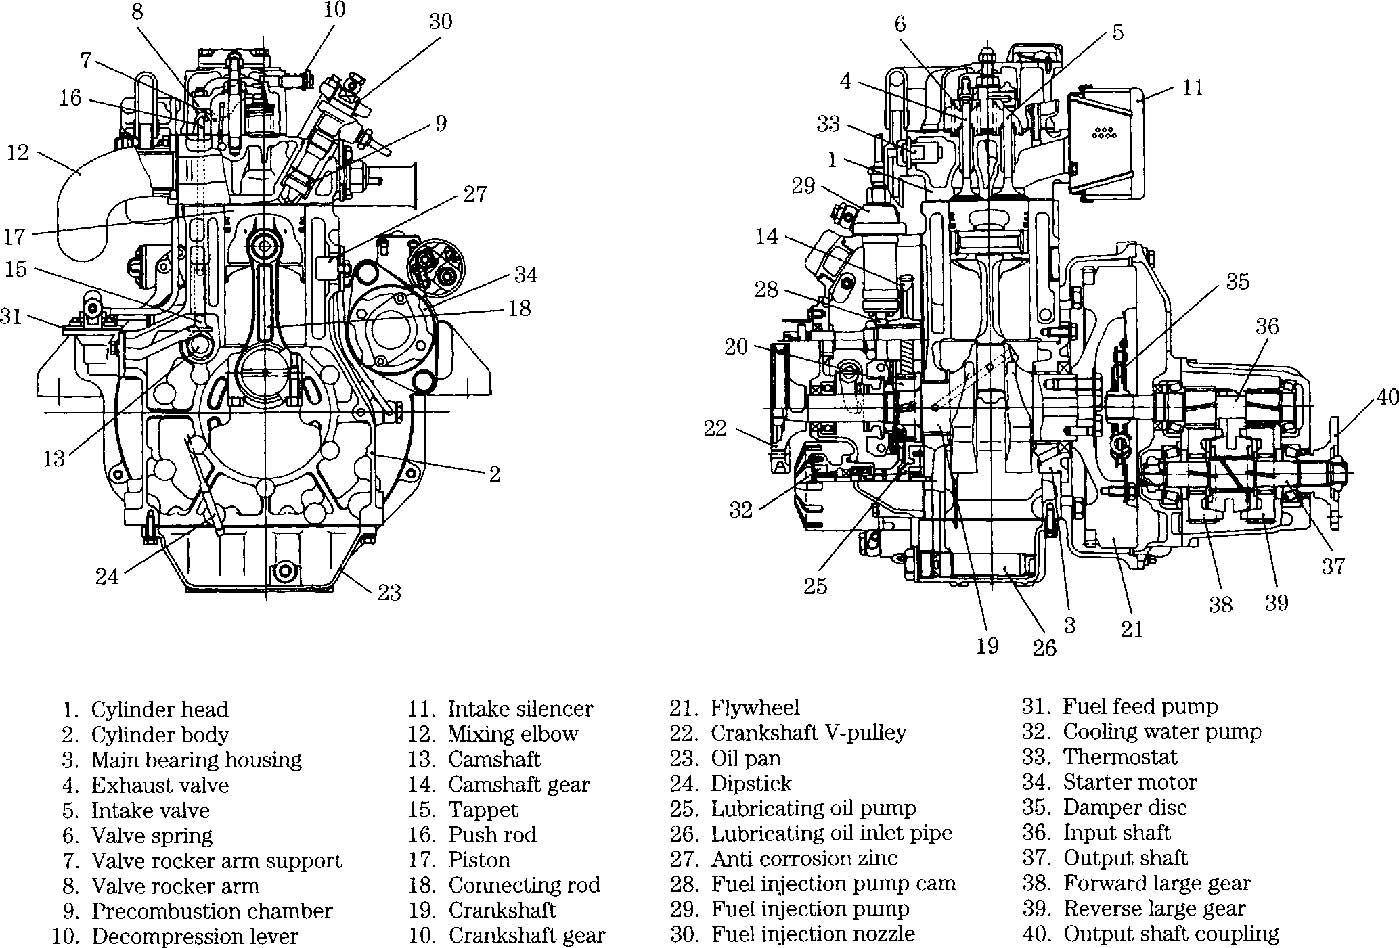 Marine Engines Or Parts Of Internal Combustion Engine